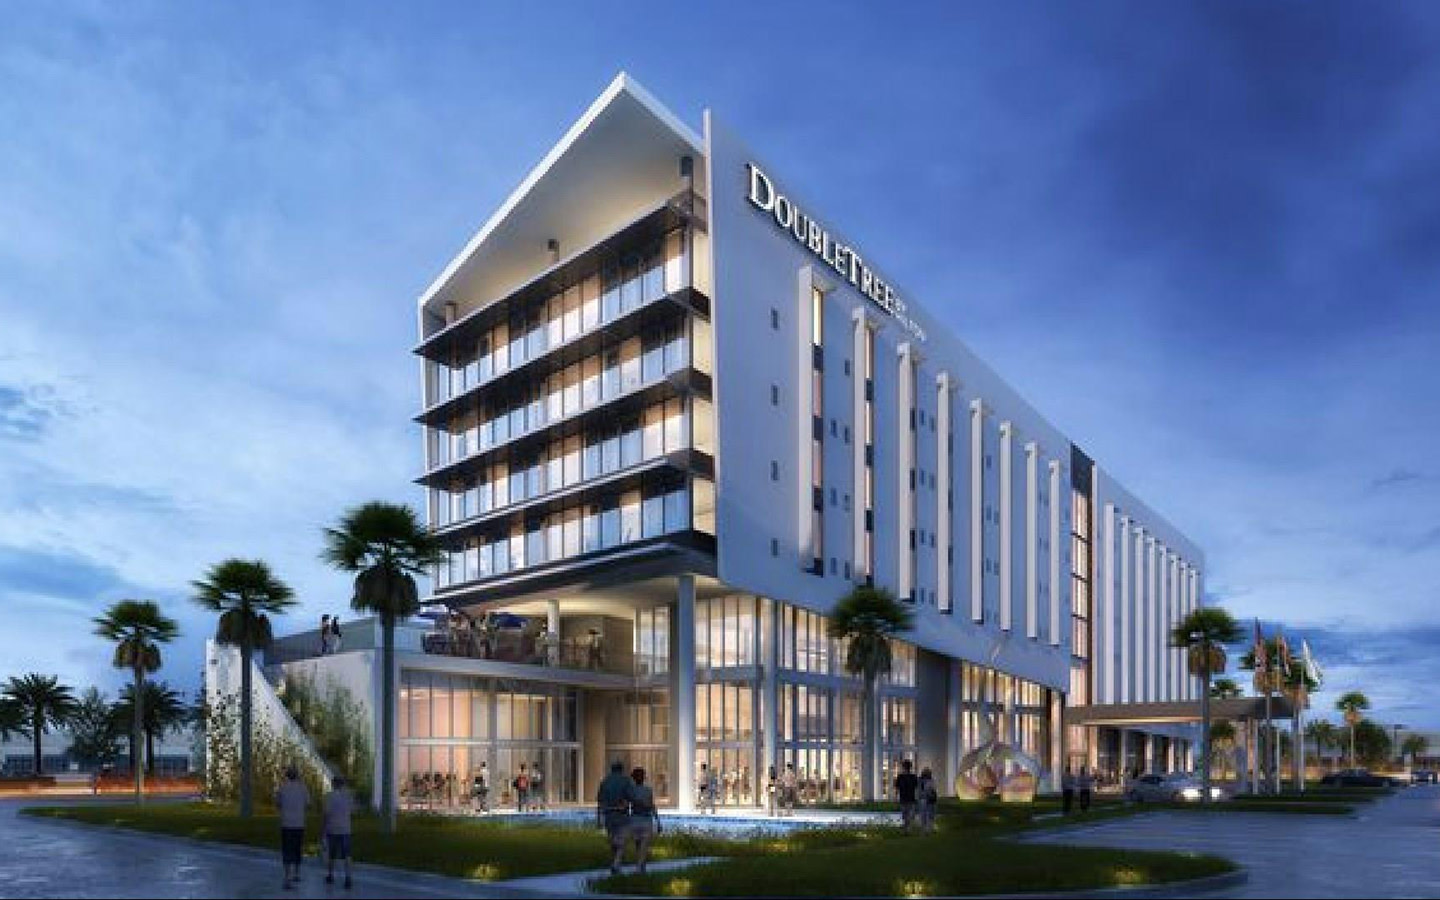 Doubletree by Hilton Doral